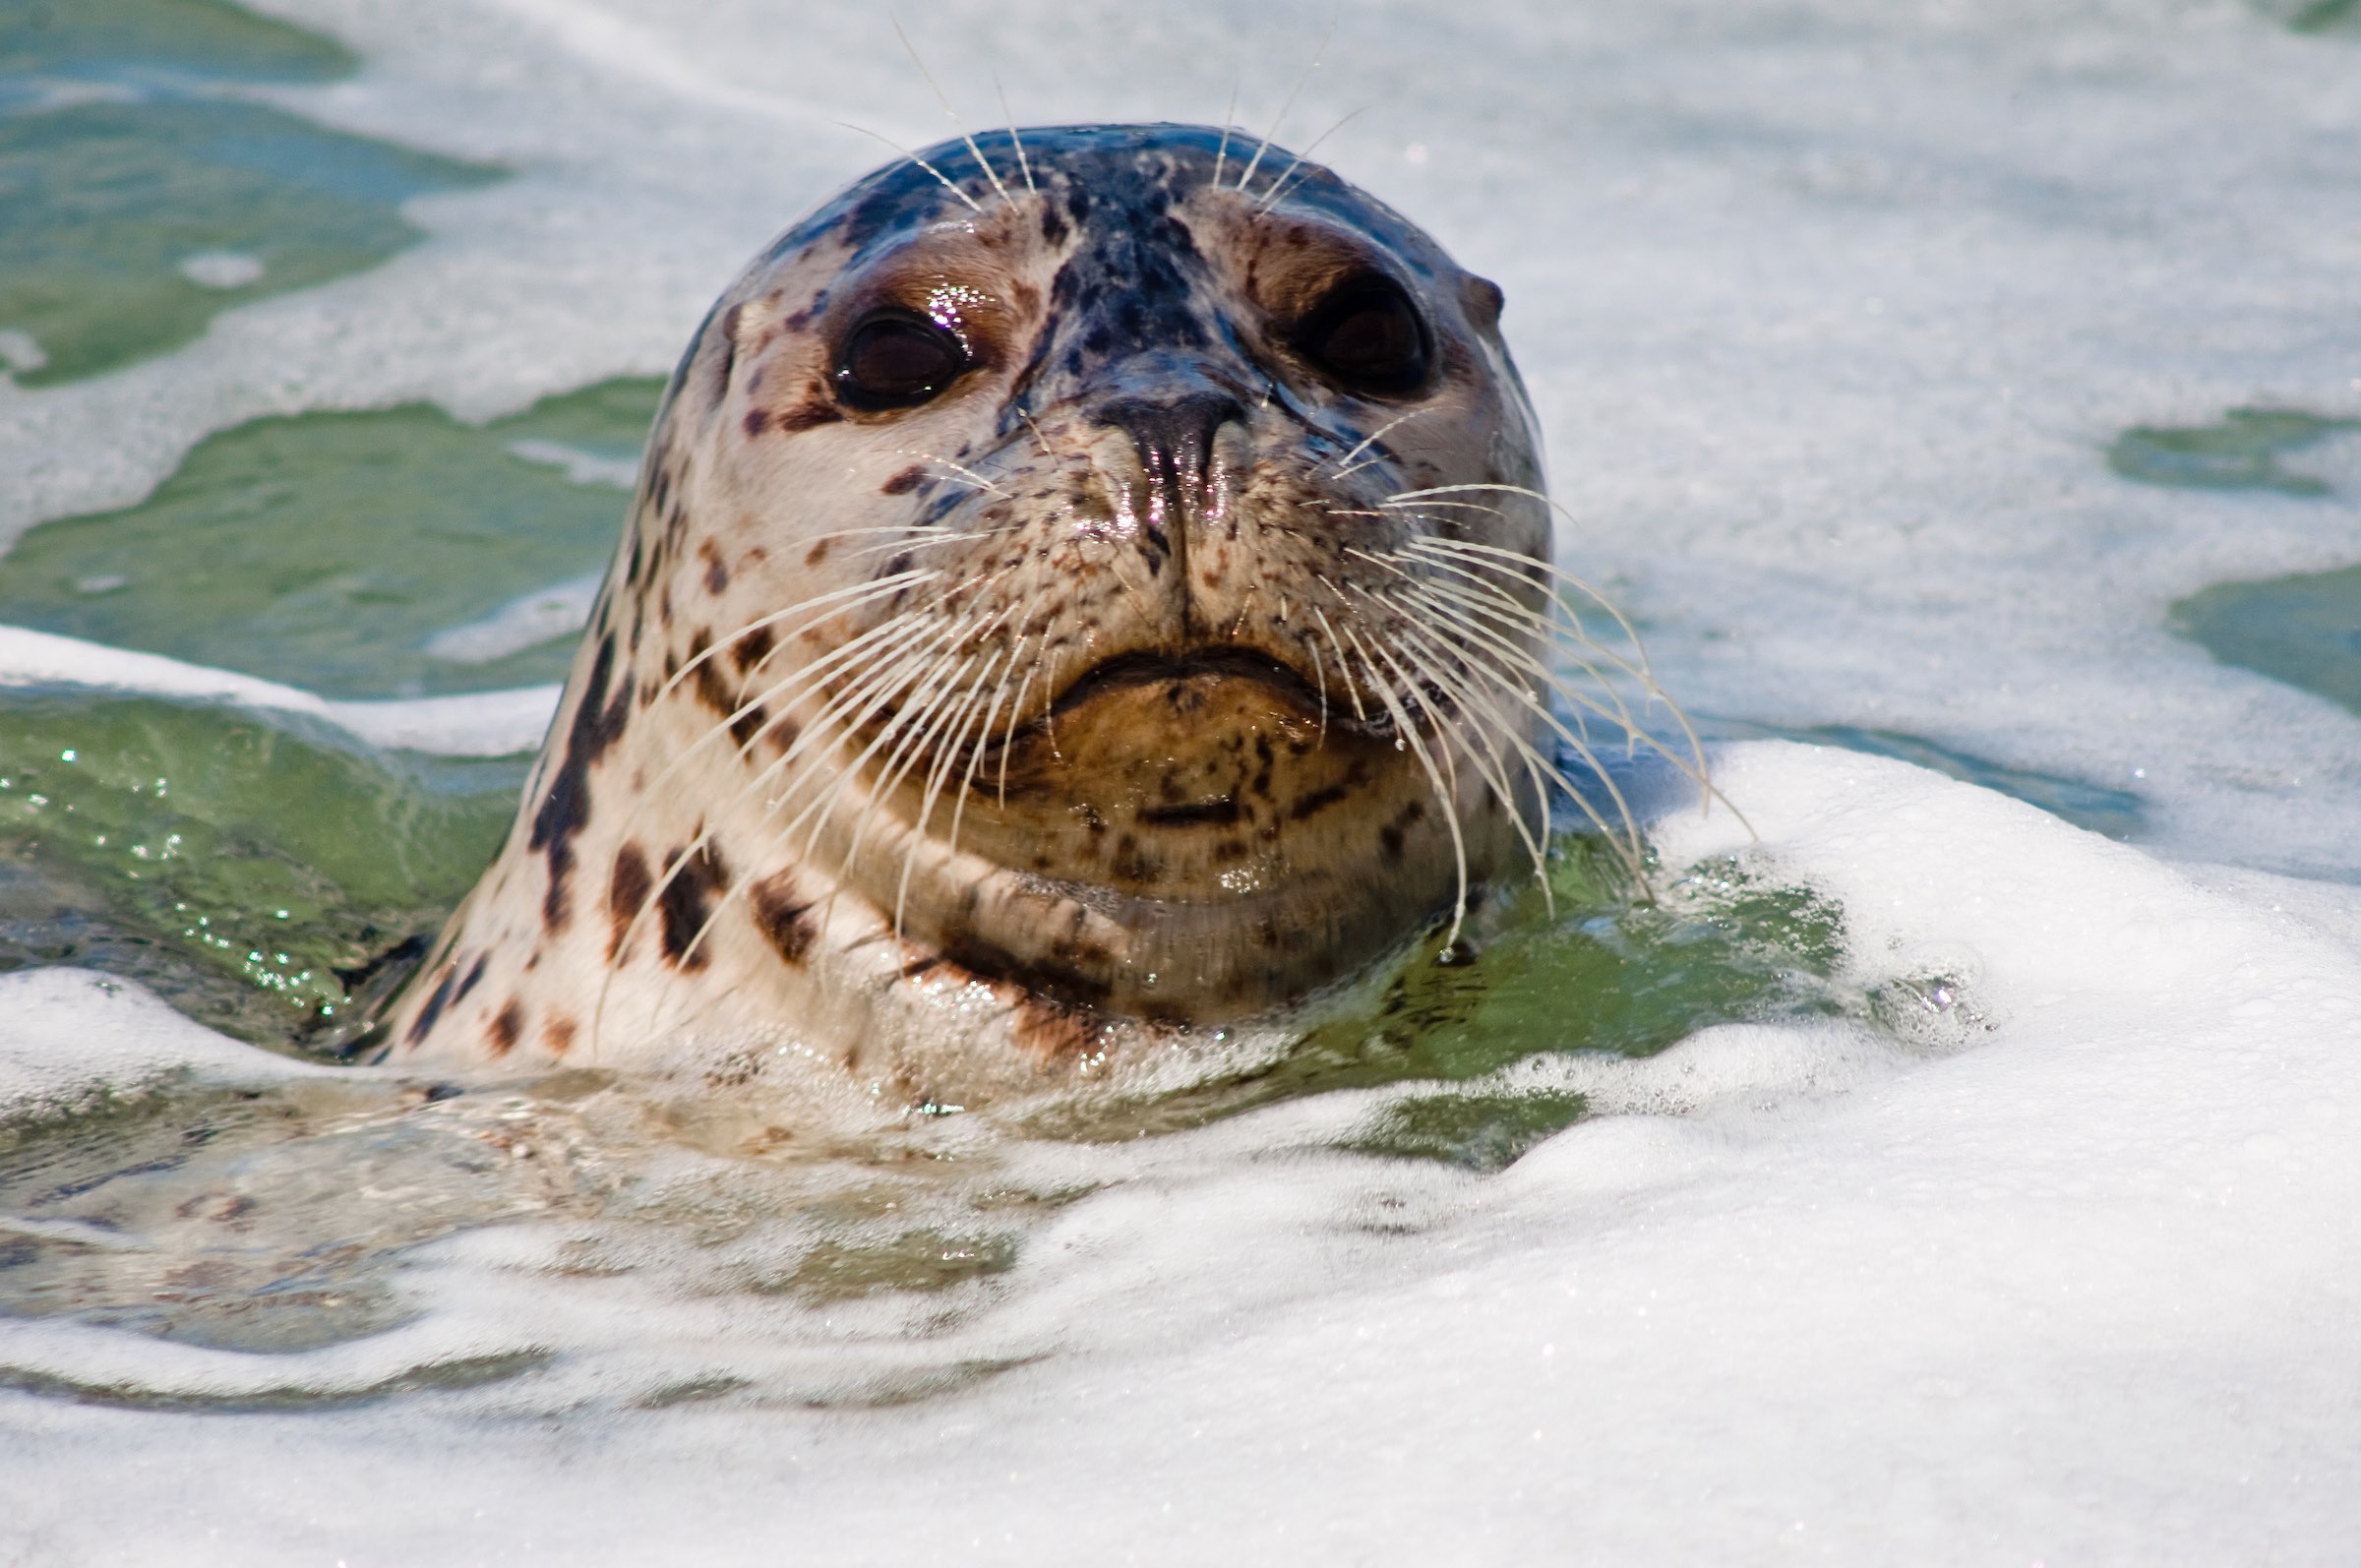 Always curious harbor seals often swim in the waters around the park